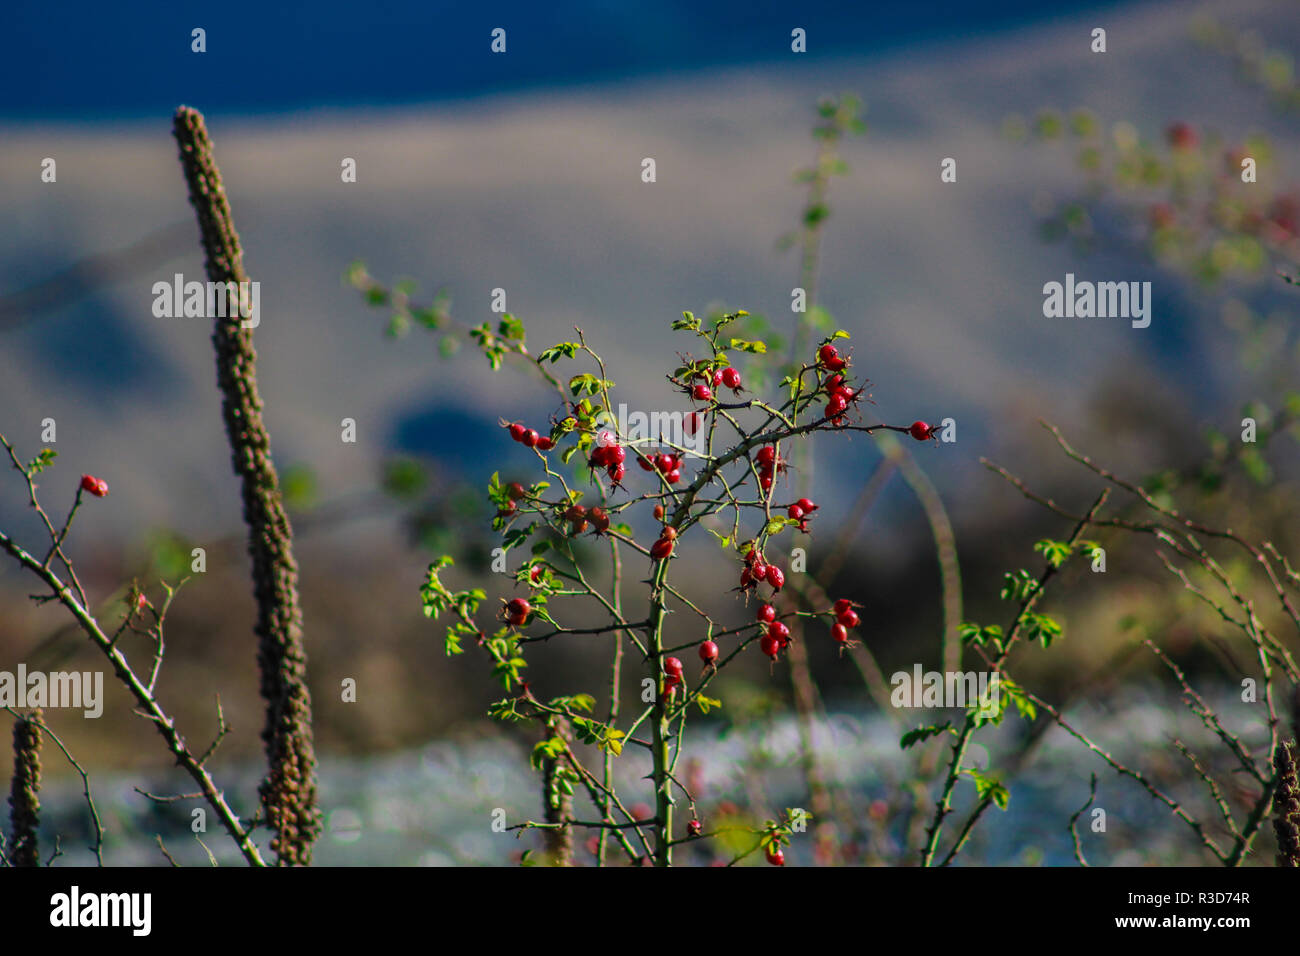 rose hip plant in front of blurred mountain background, Ashburton Lakes District, New Zealand - Stock Image